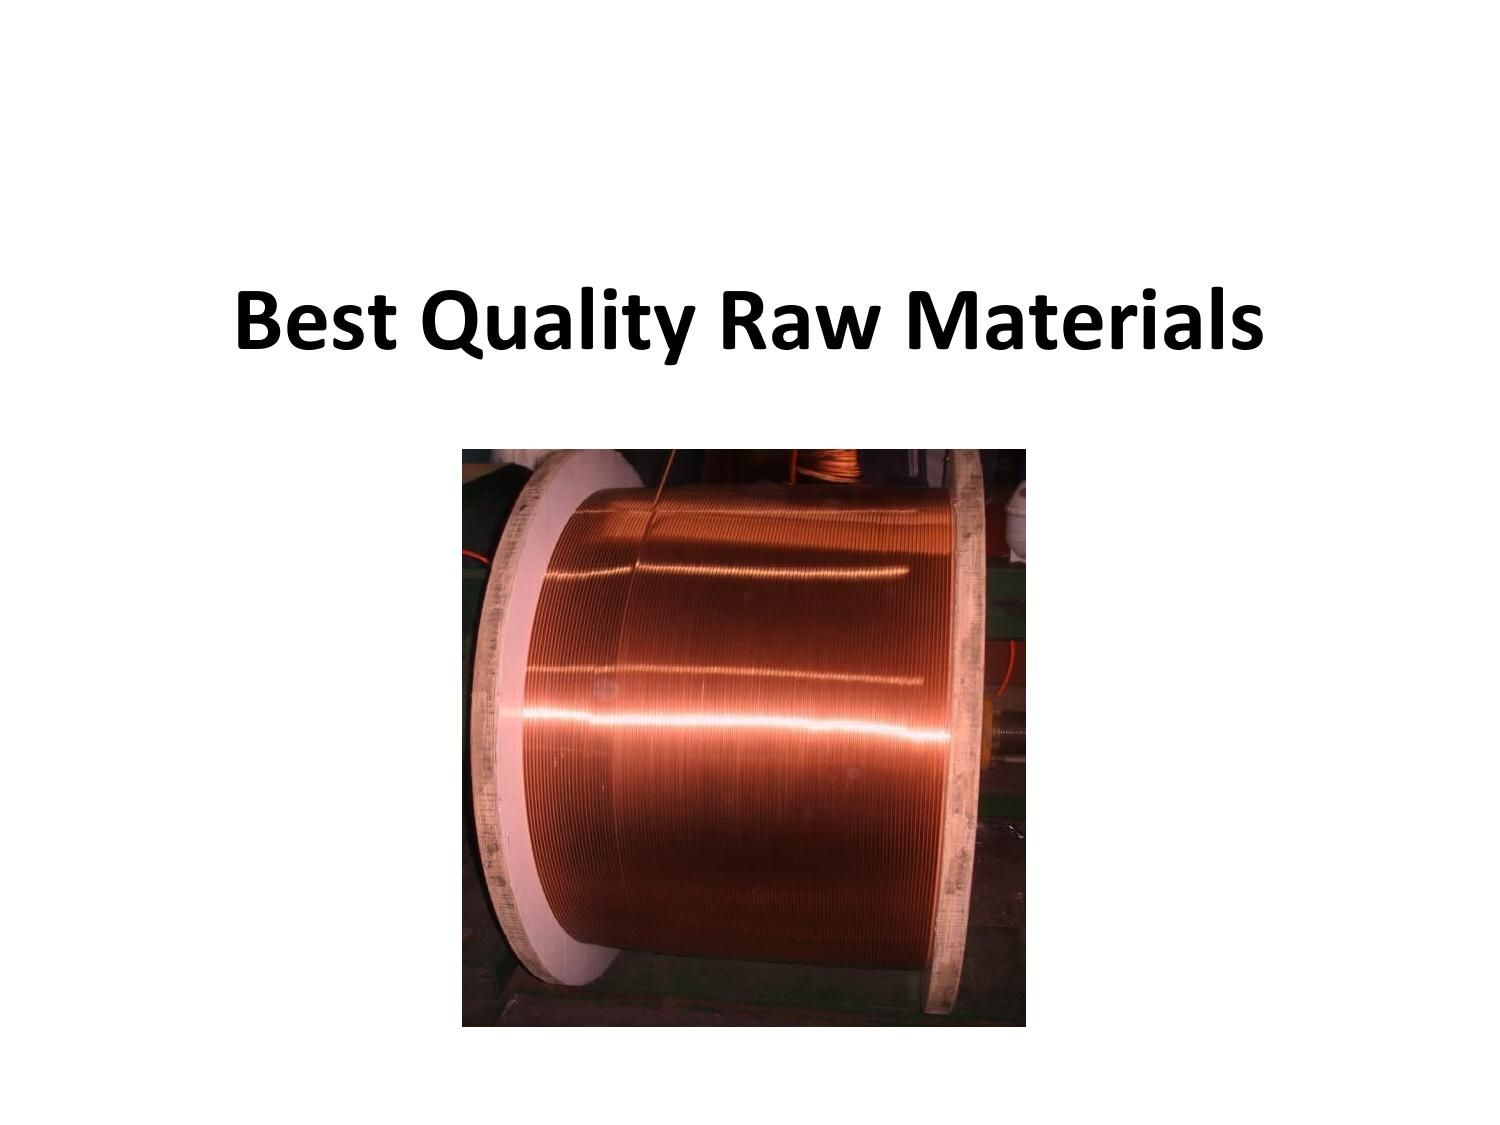 Best quality raw materials | Pinterest | Raw material